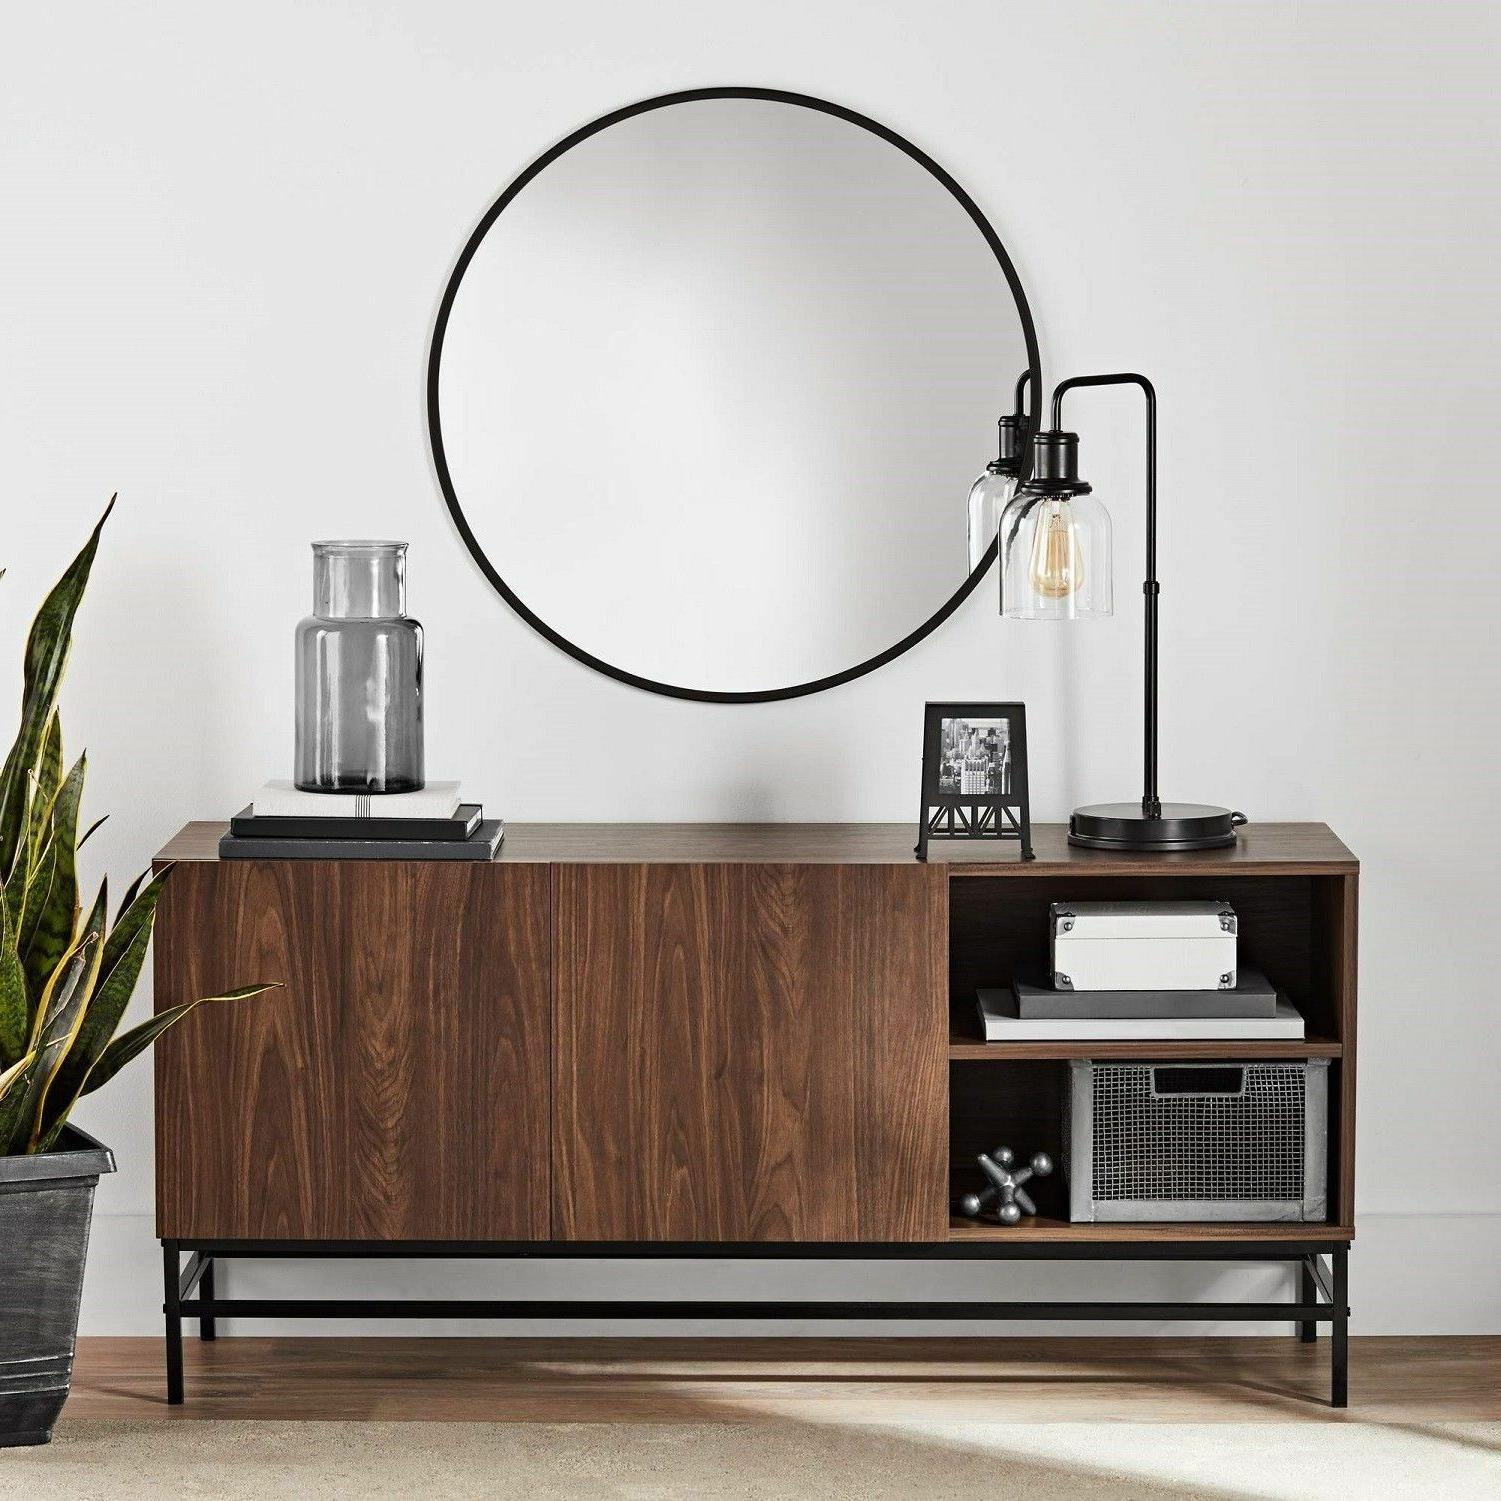 Modern Living Room Console Table Wood TV Stand Hall Entry Ca